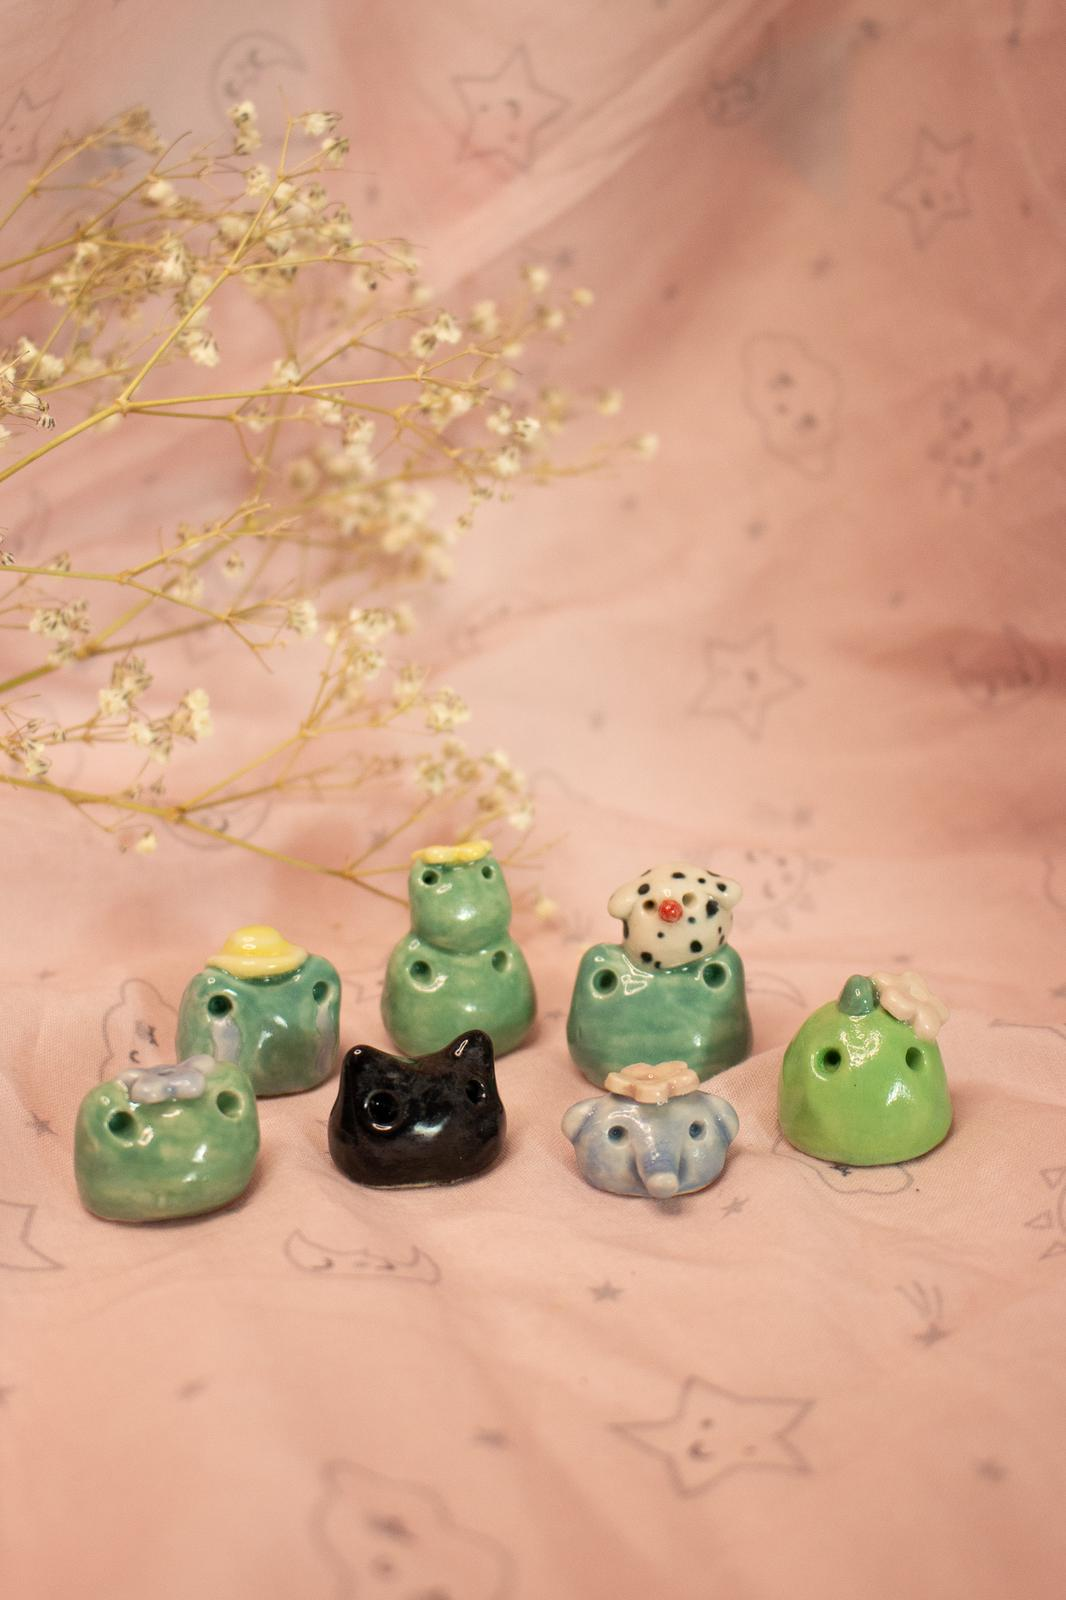 Froggy 'n' Friends Incense Holders